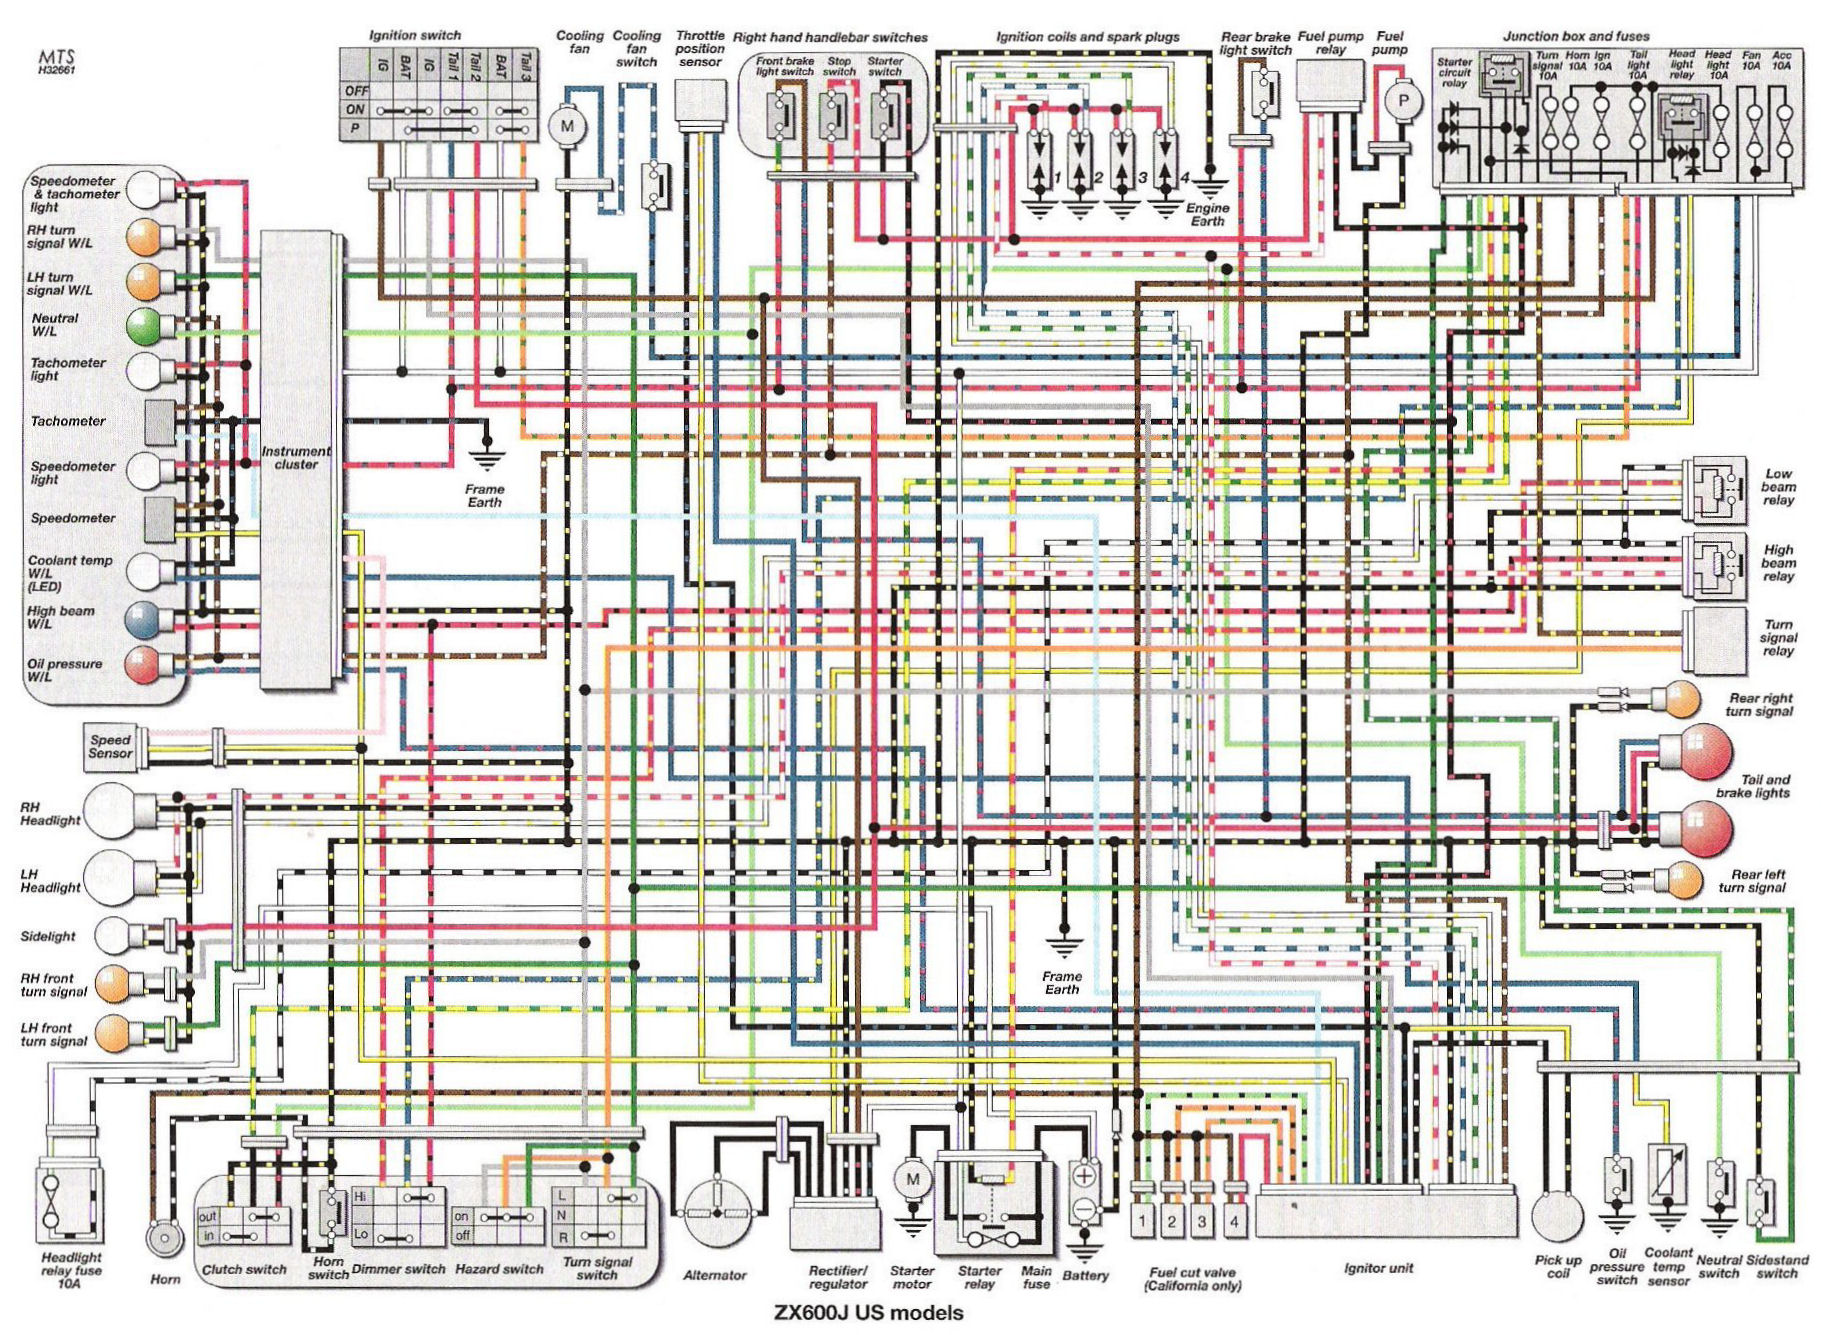 zx600j_us?zoom\=2.625\&resize\=665%2C488 2004 gsxr 600 wiring diagram 2003 gsxr 600 wiring diagram \u2022 wiring 99 gsxr 600 wiring diagram at gsmportal.co